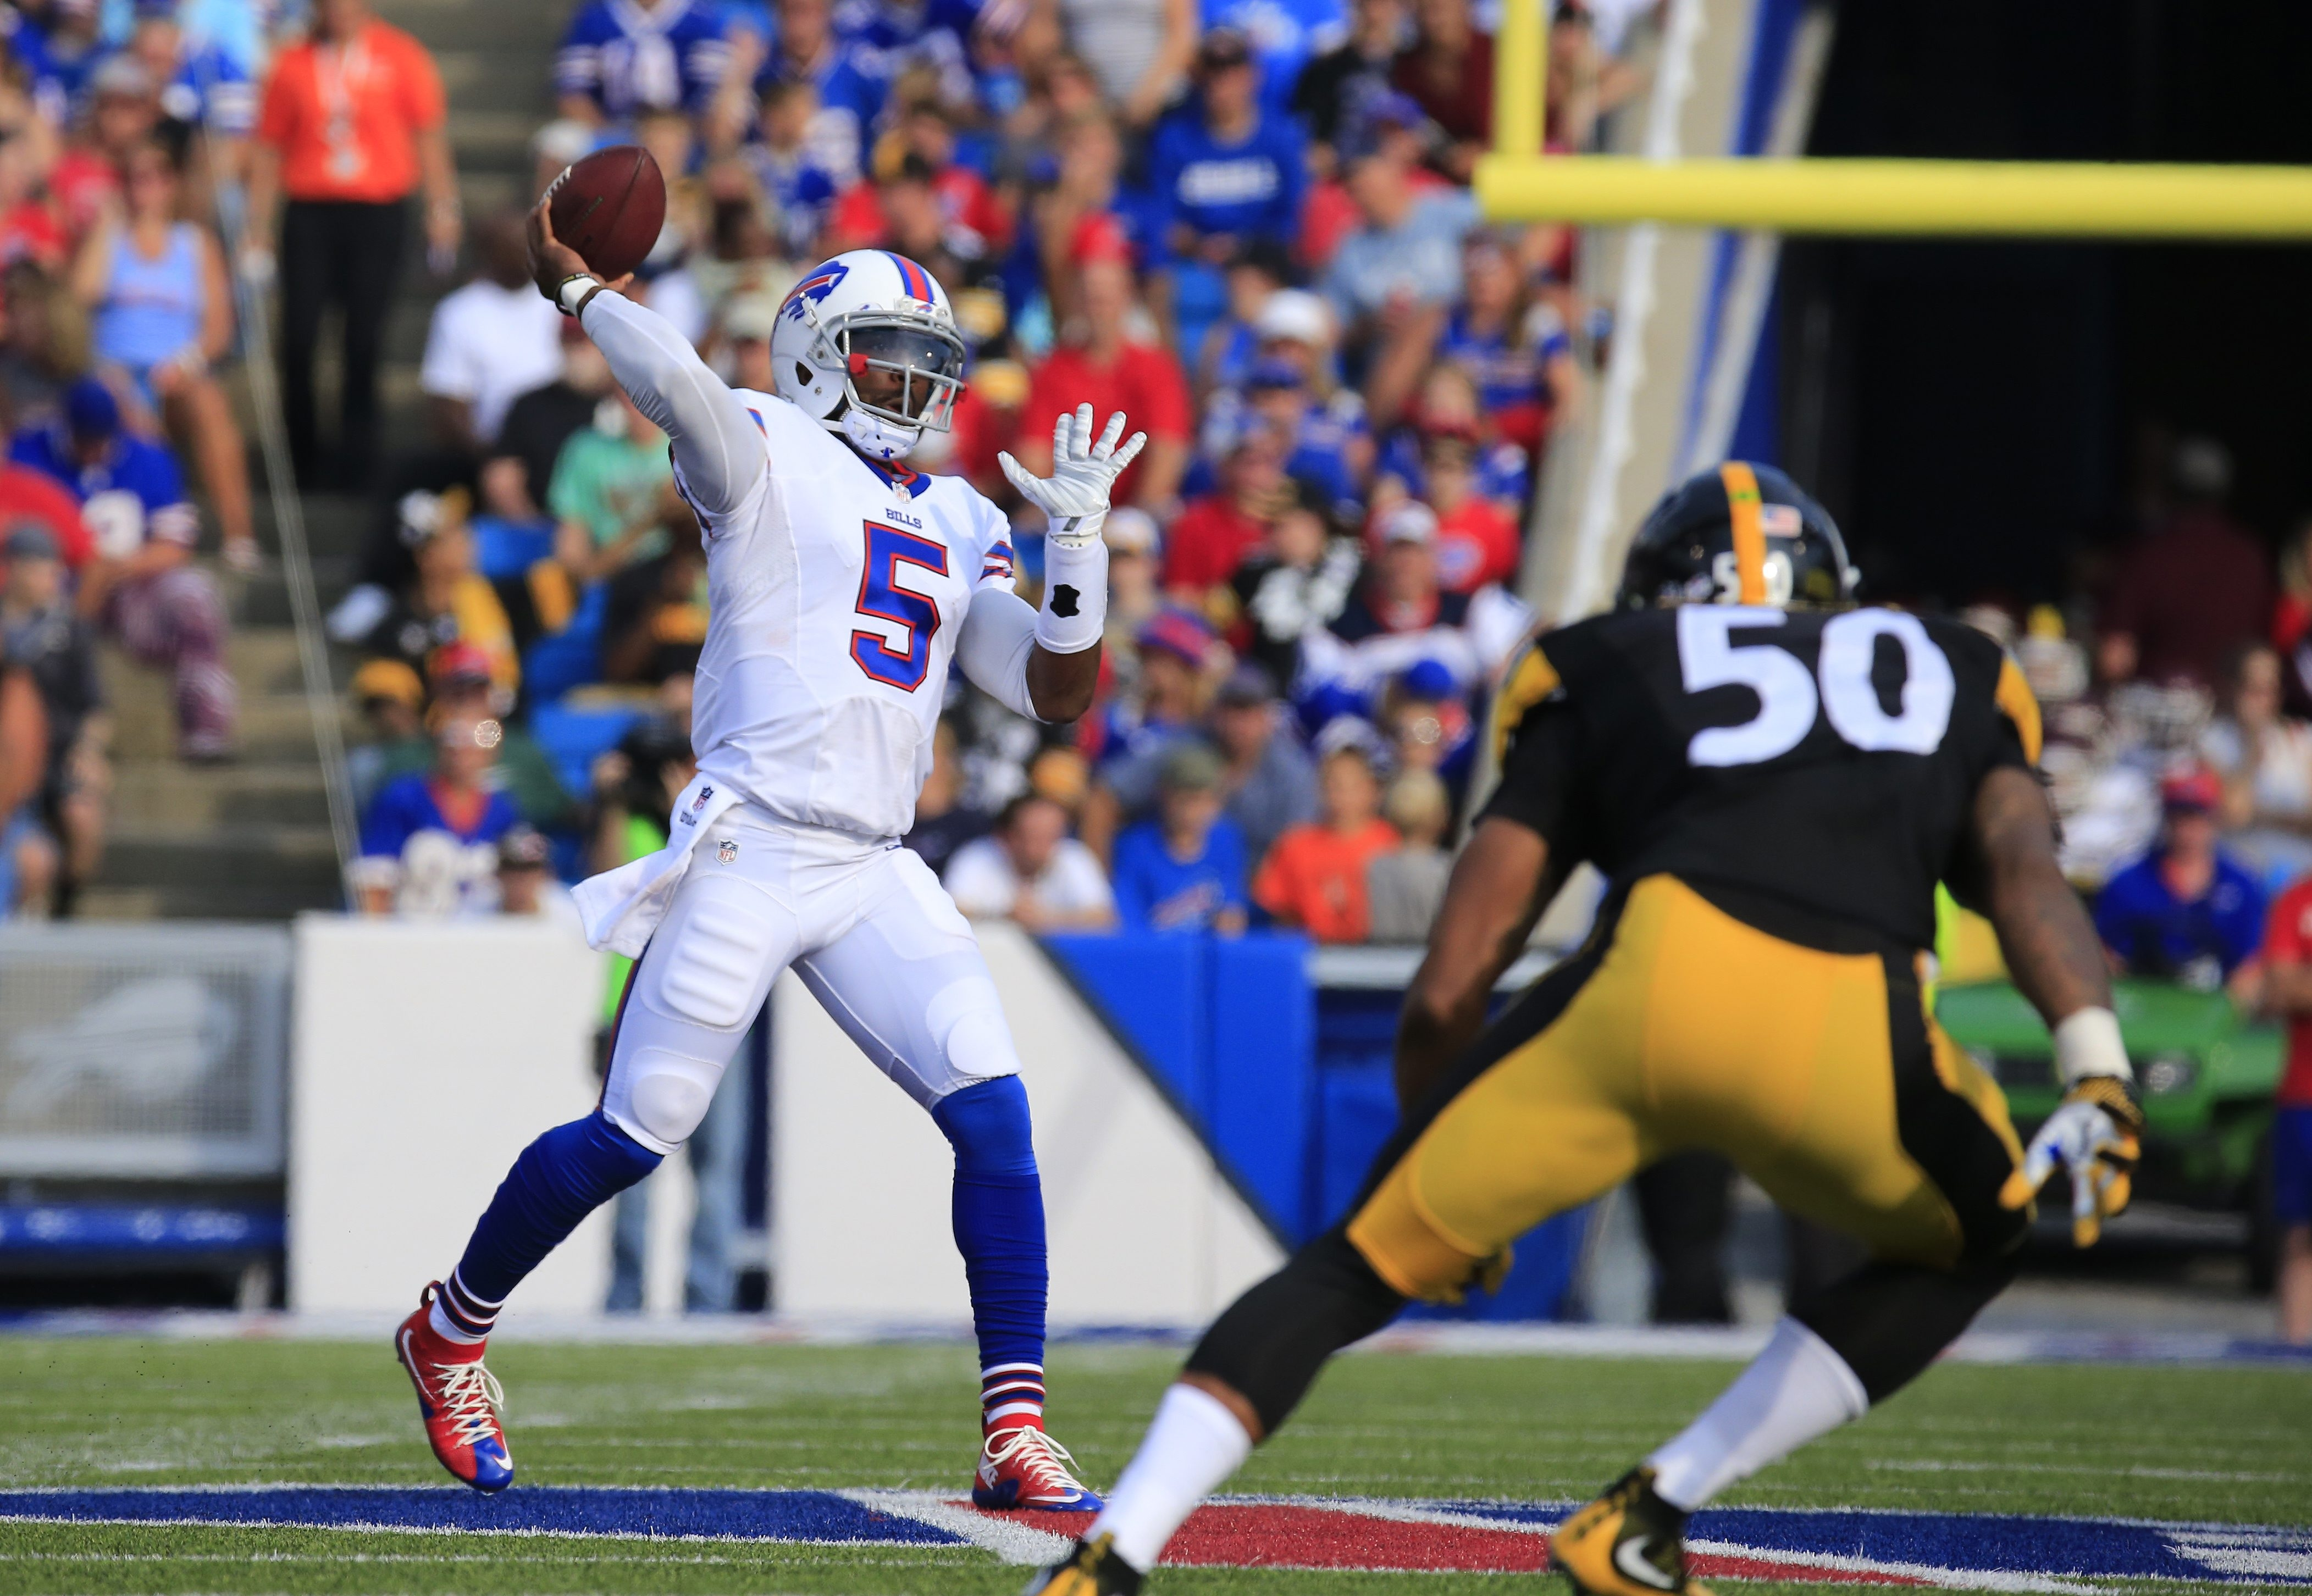 Buffalo has always rooted for small-sized, running quarterbacks, and Tyrod Taylor is one of those.